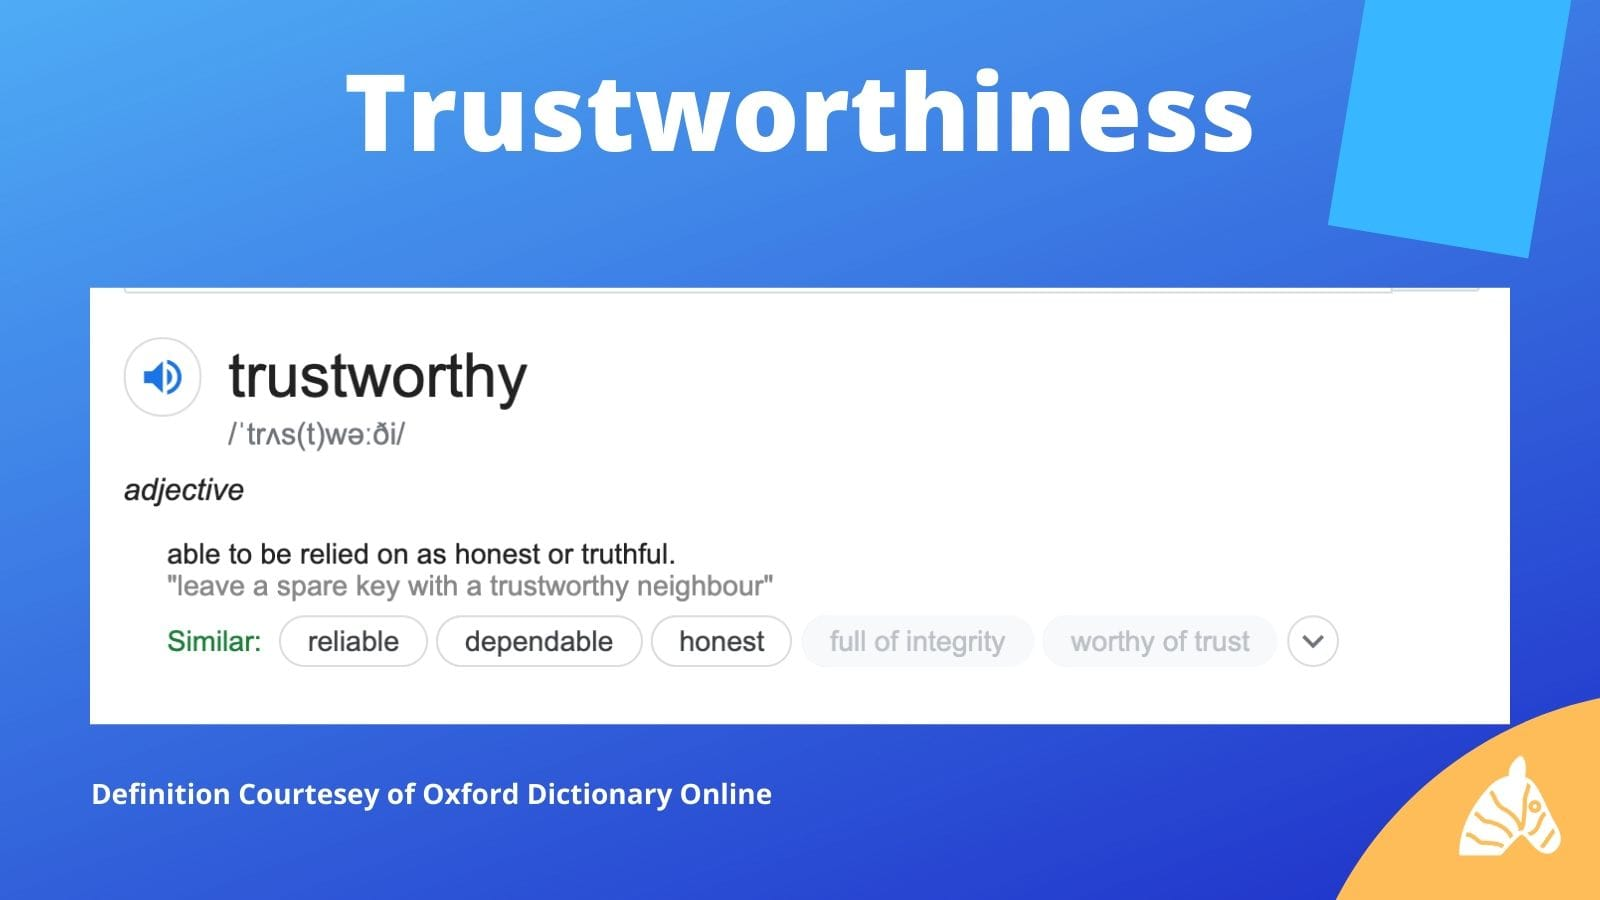 trustworthiness in the context of E-A-T acronym